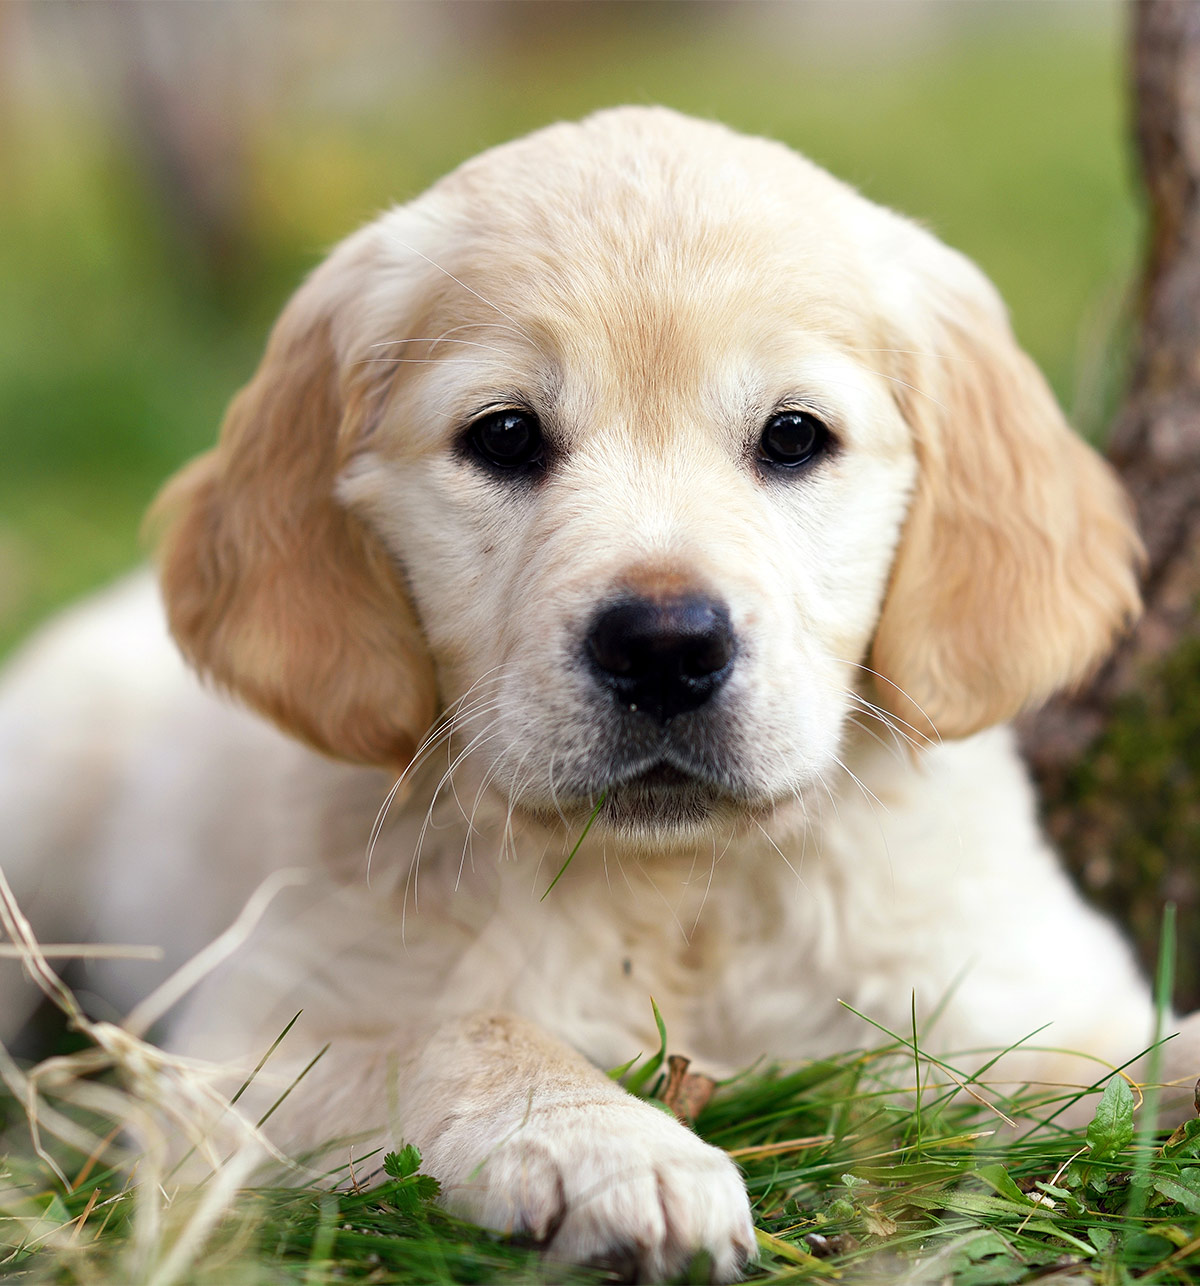 Puppy Pictures of Golden Retrievers